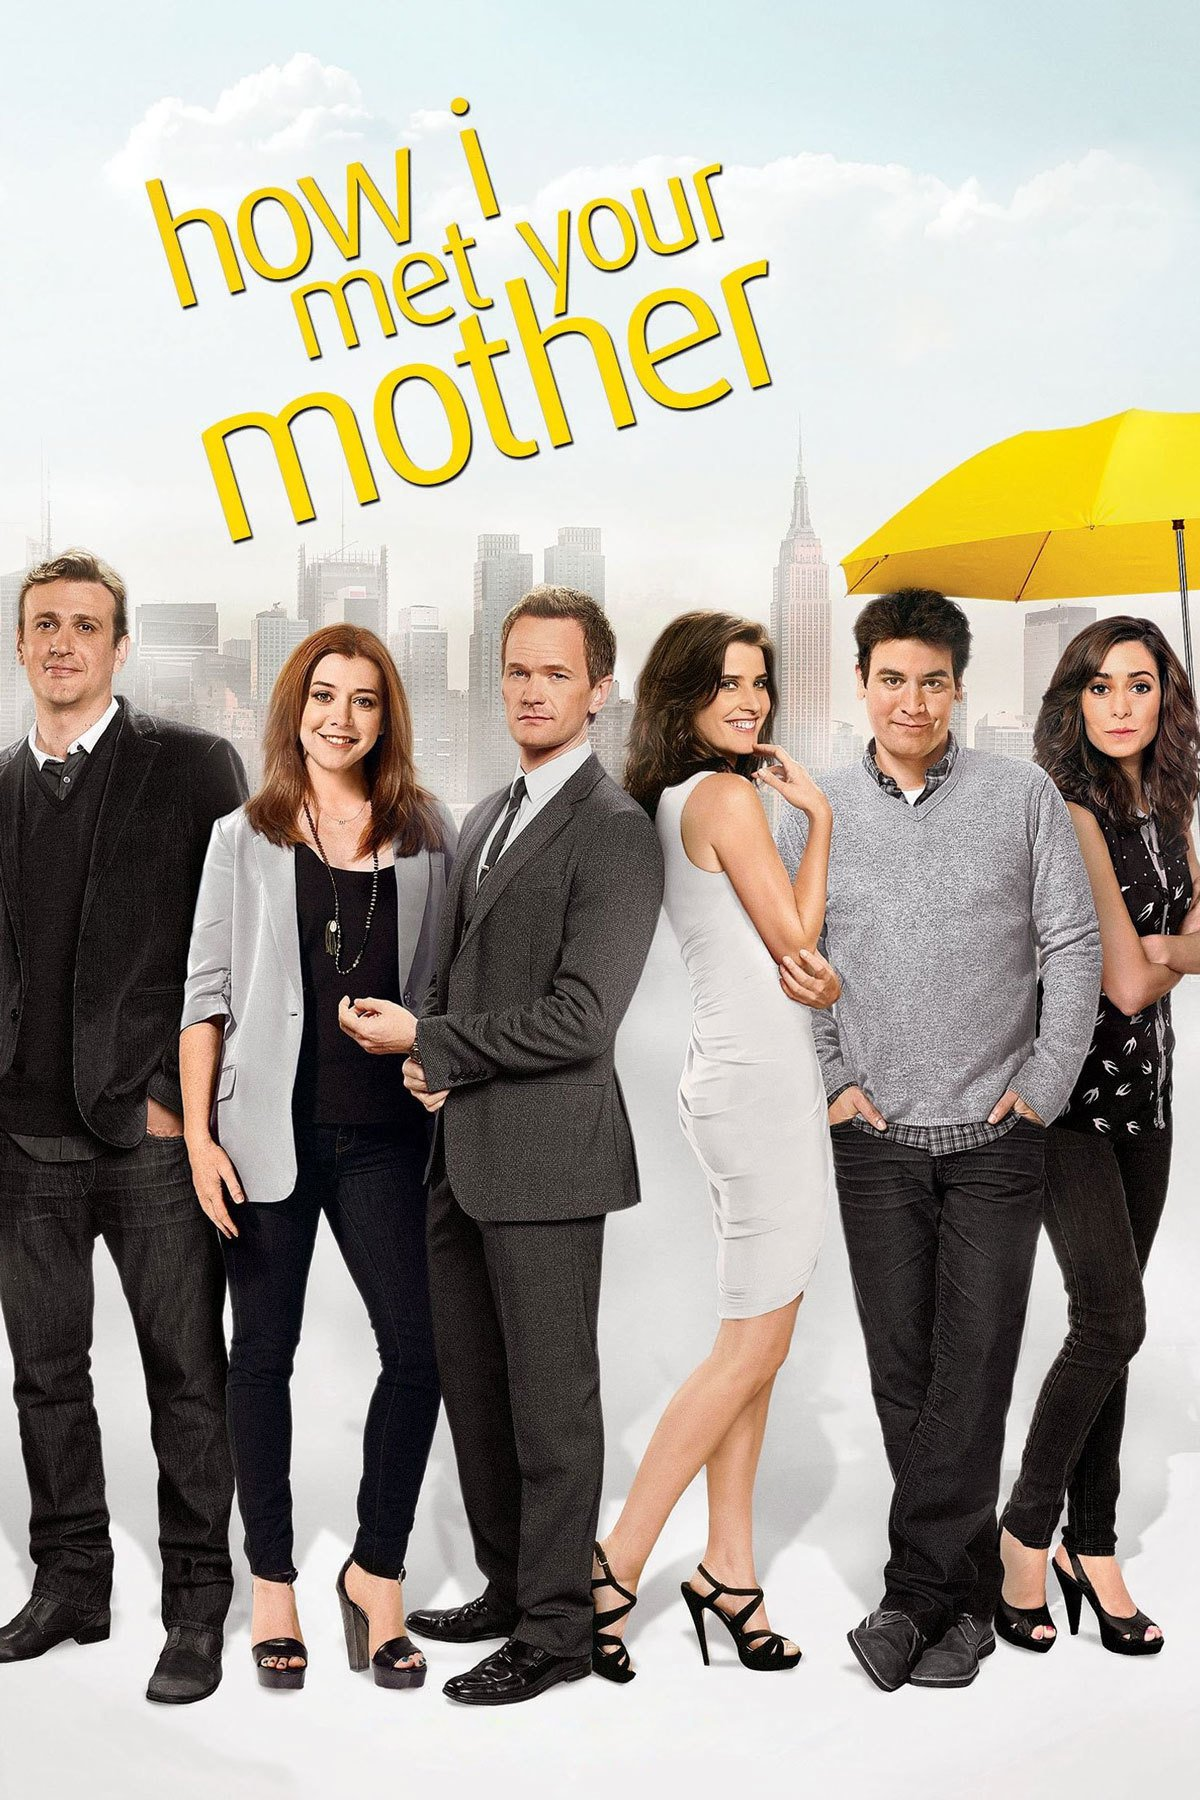 How I Met Your Mother (TV Series 2005–2014) - IMDb